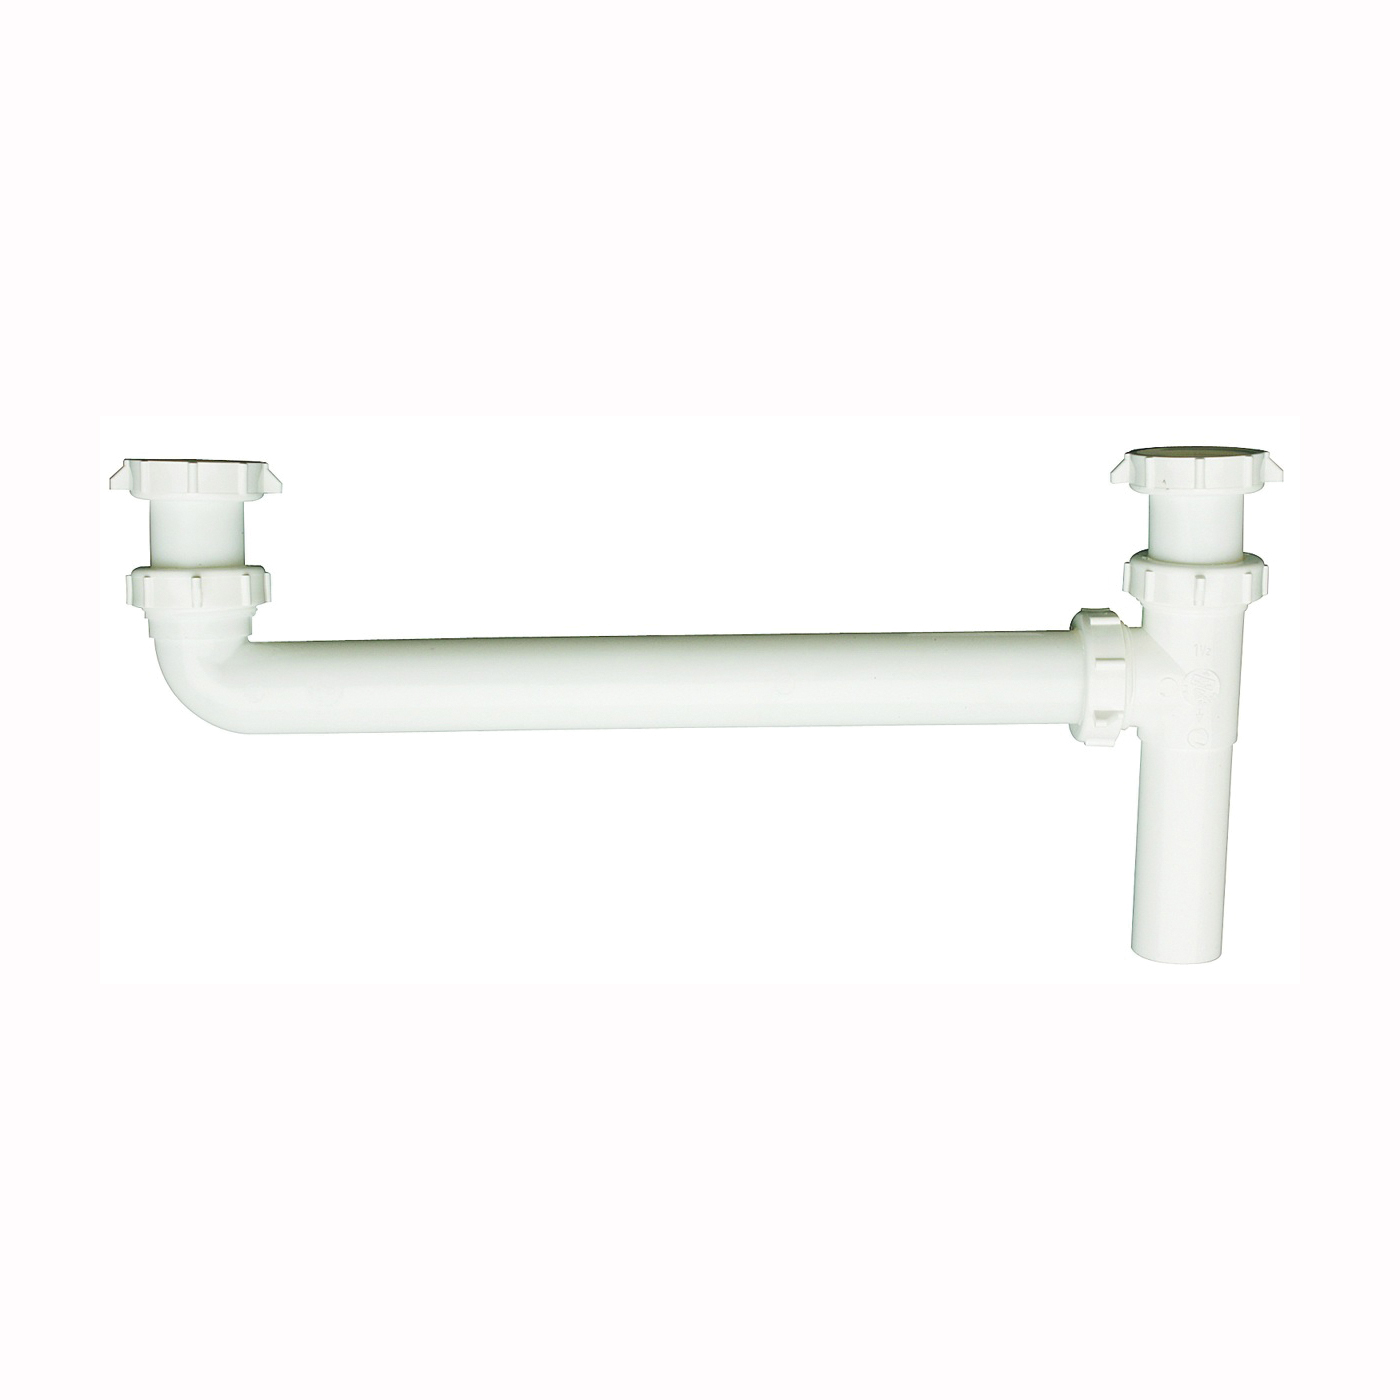 Picture of Plumb Pak PP20925 End Outlet, 1-1/2 x 1-1/2 in, Slip Joint, Plastic, White